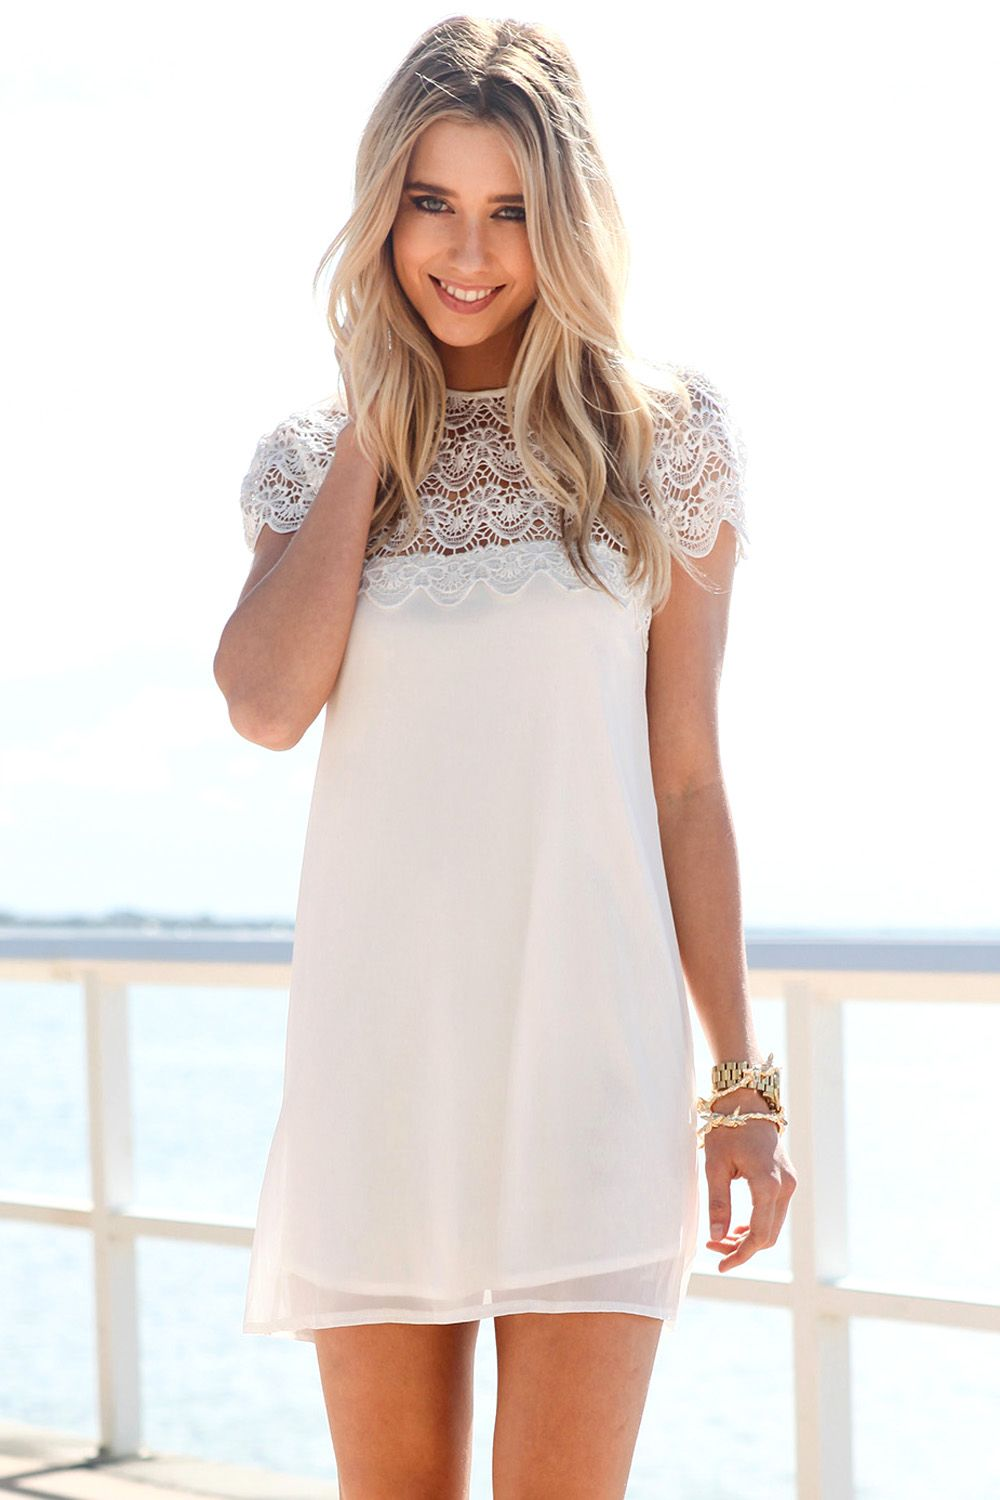 Bridesmaids dresses with fur stoles we can rent them pearl jewelry